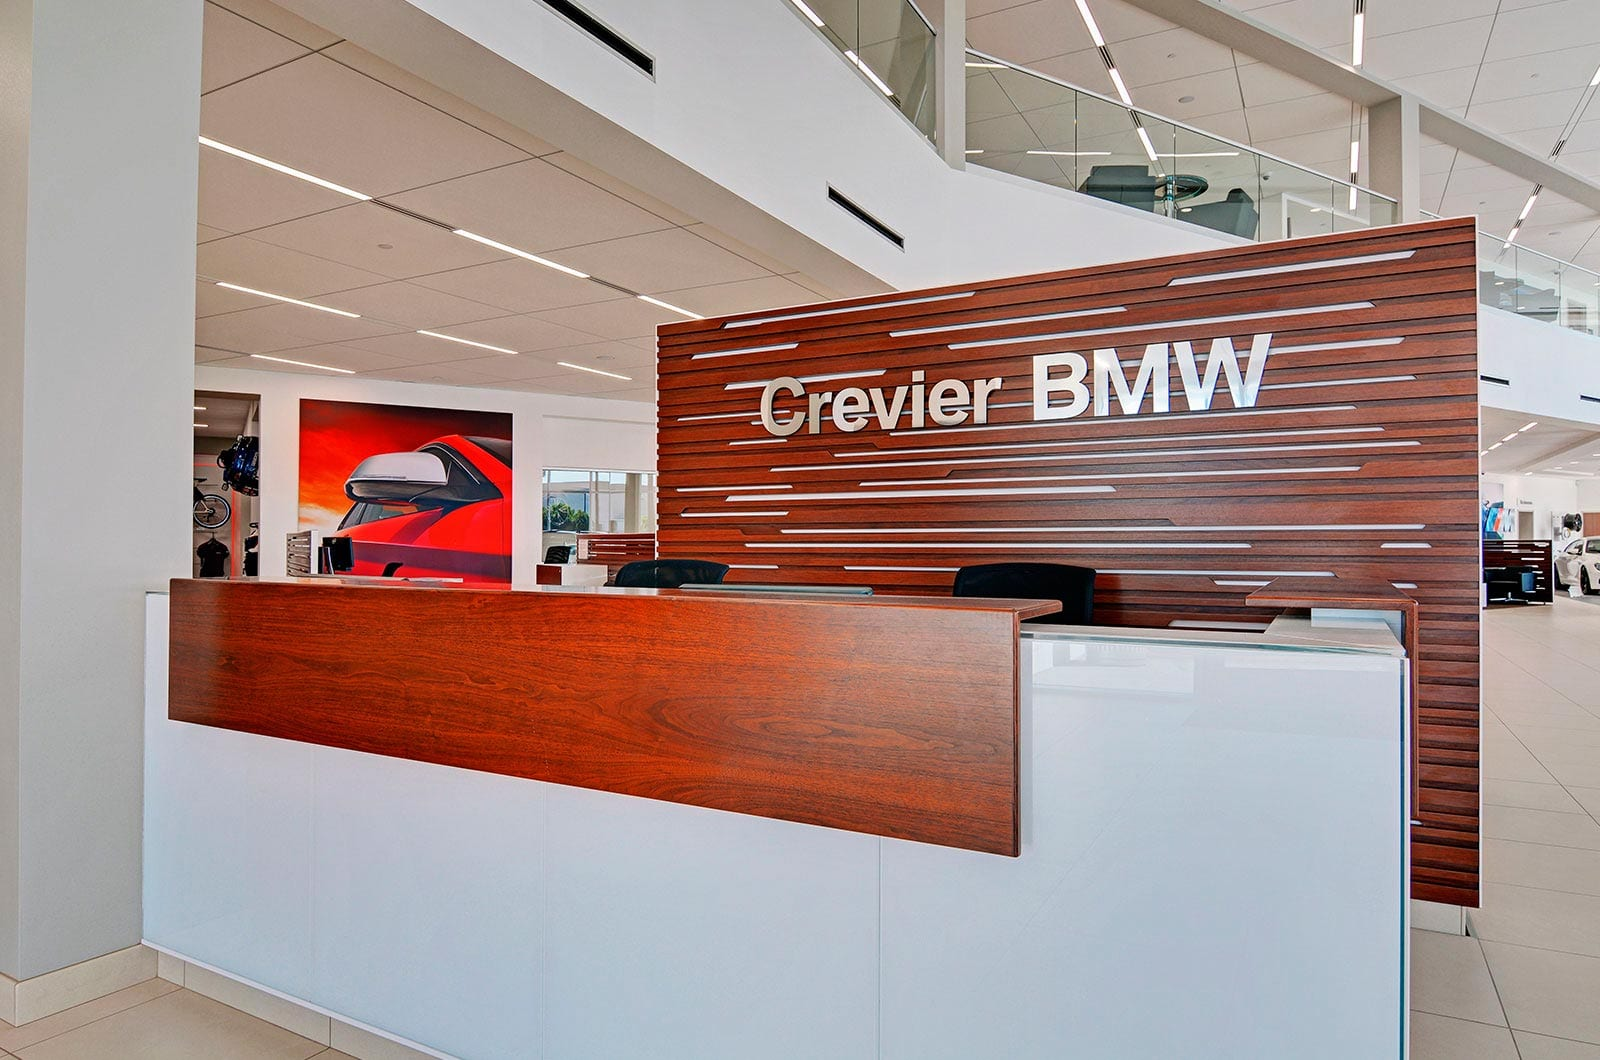 BMW-Featured-Image | BMW Dealership Virtual Tour | BMW Auto Dealership Virtual Tour | Dealership Virtual Tour